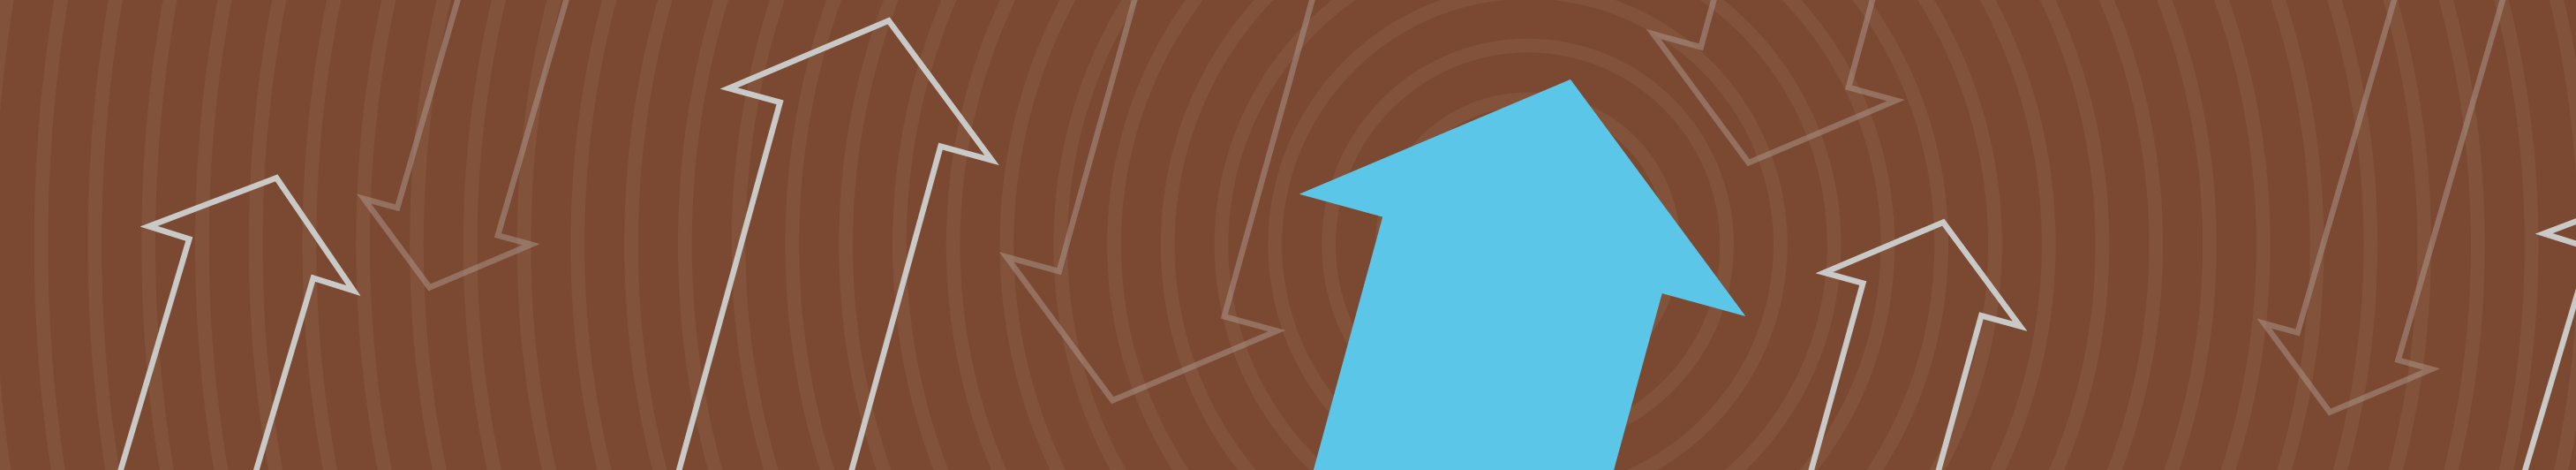 illustration of arrows pointing up on brown background